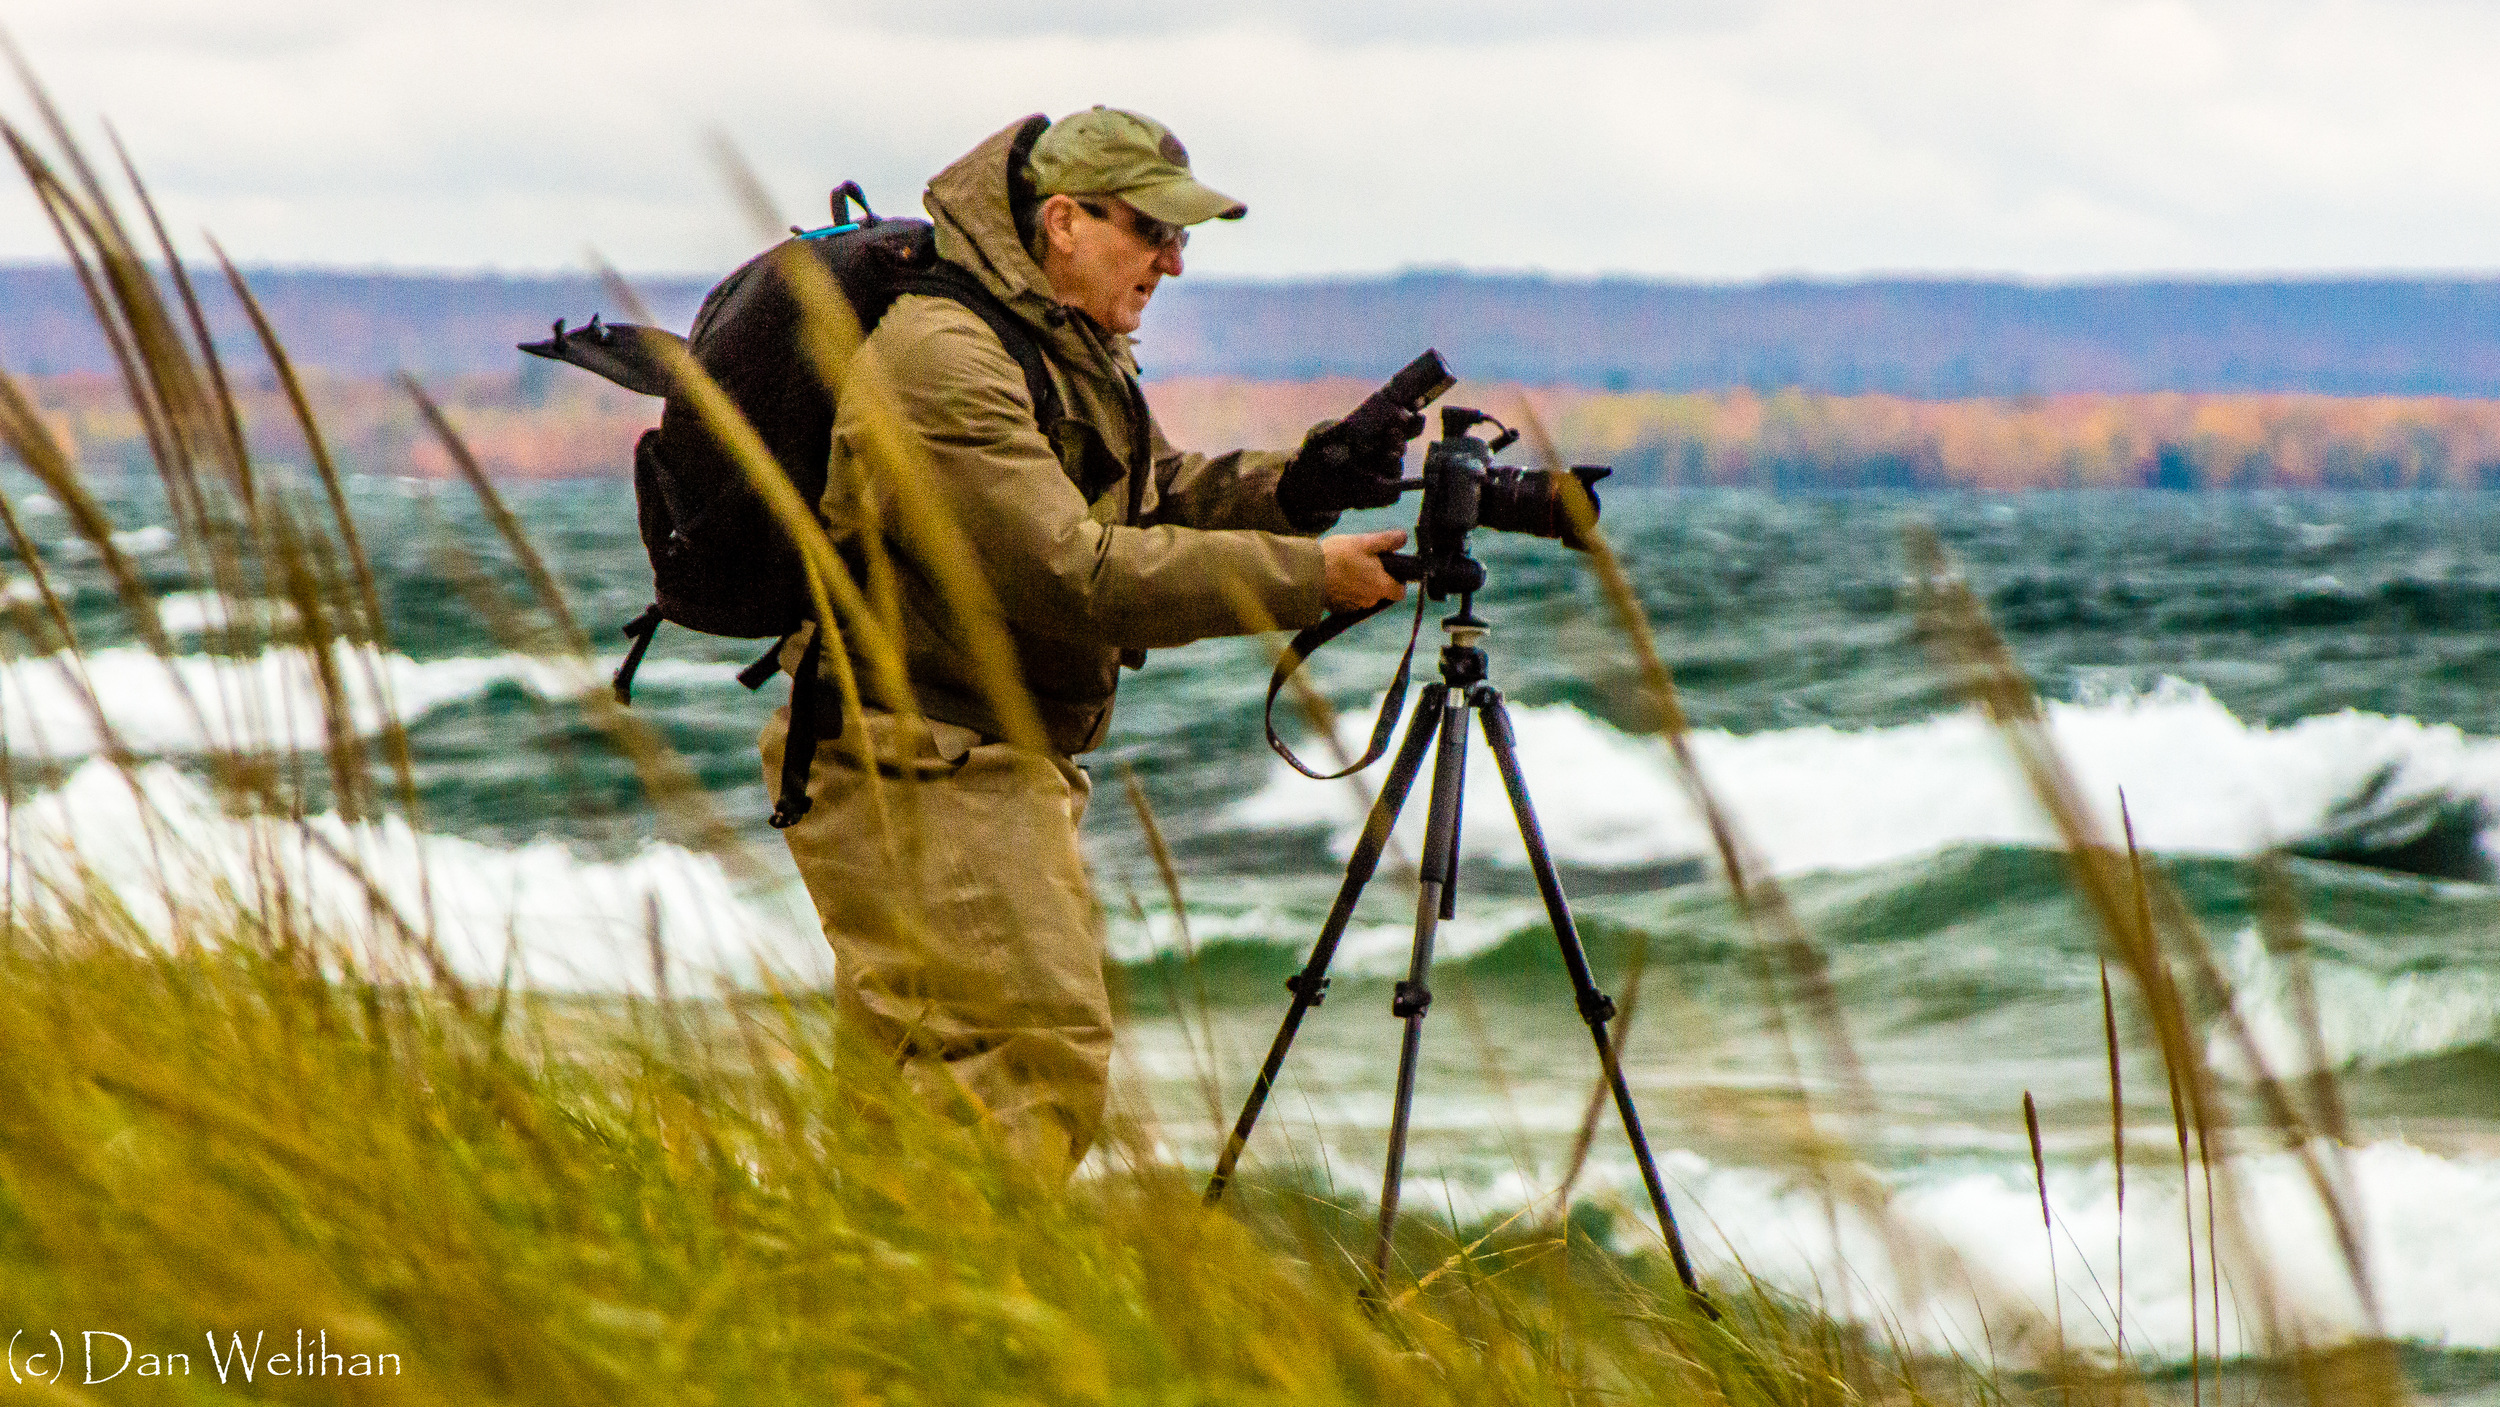 Tom Cadwalader on Lake Superior shoreline near Munising, Michigan - October, 2013